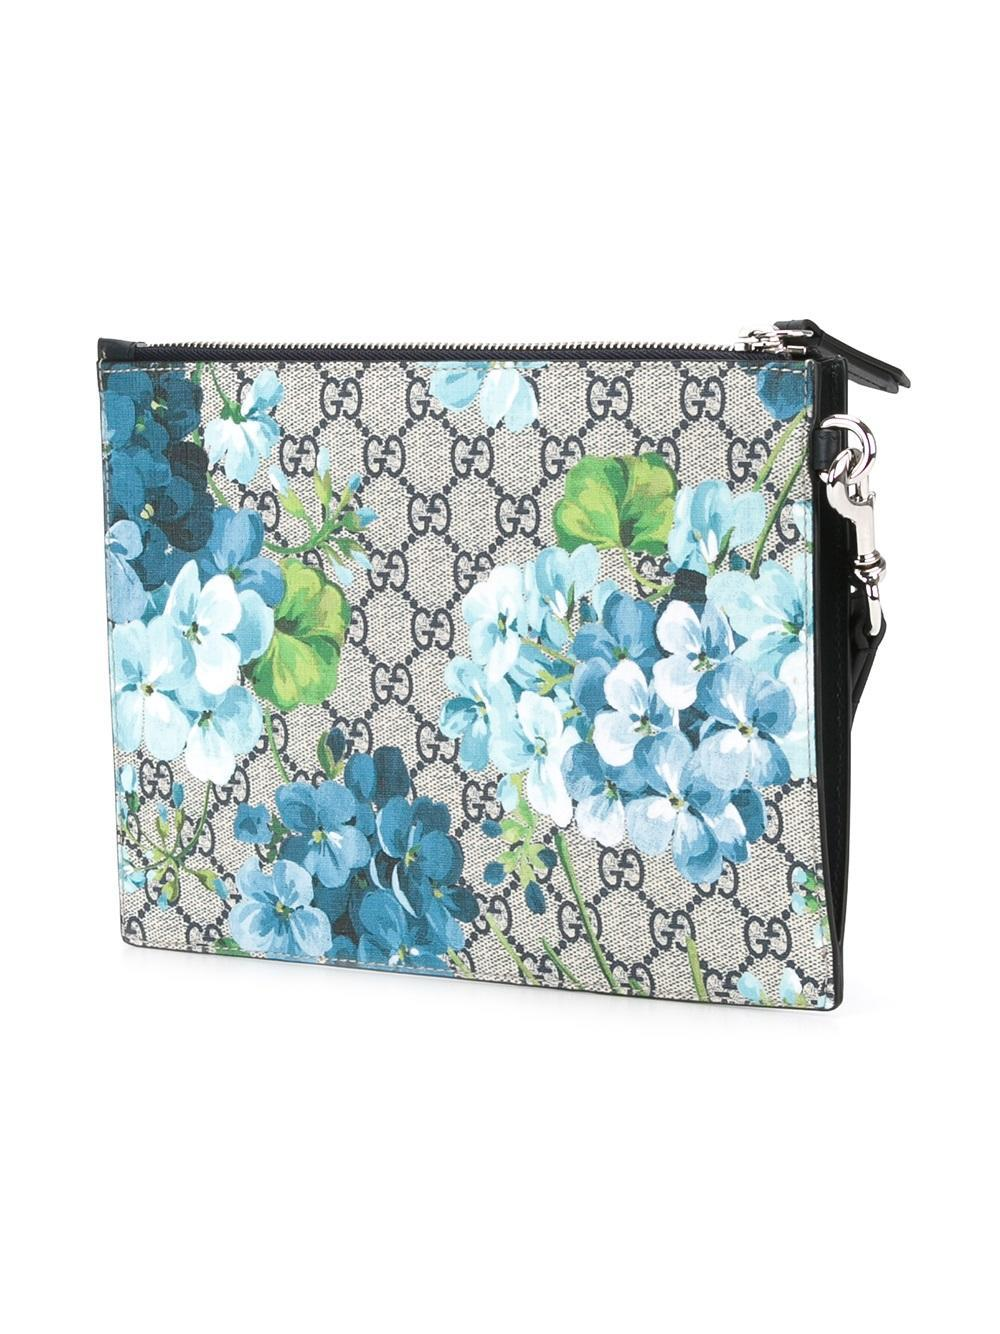 Lyst - Gucci Floral Print Clutch In Blue For Men